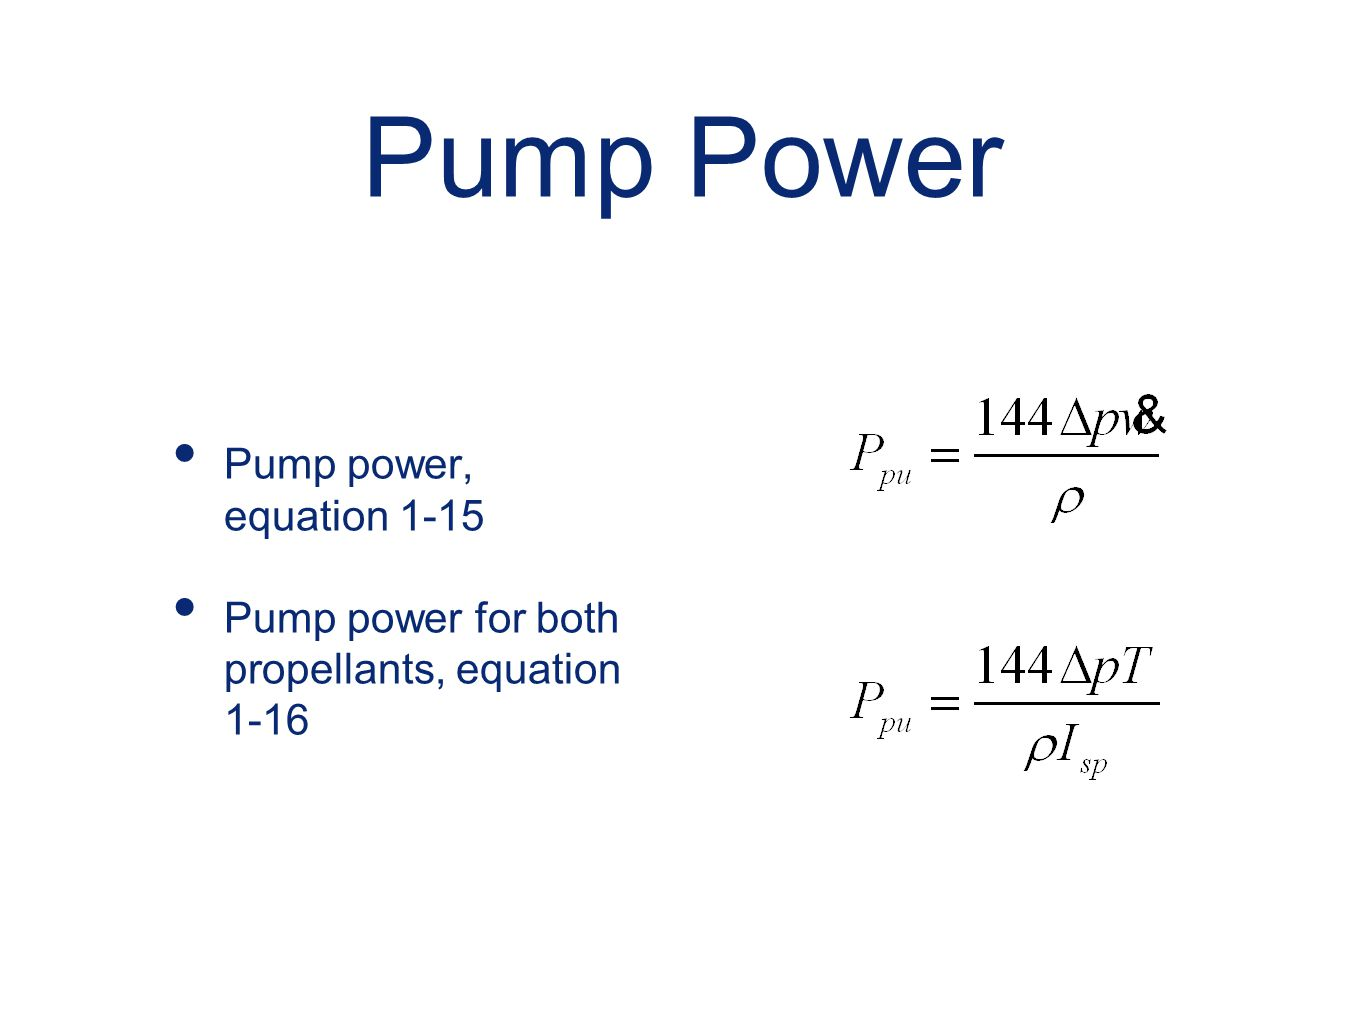 Pump Power Pump power, equation 1-15 Pump power for both propellants, equation 1-16